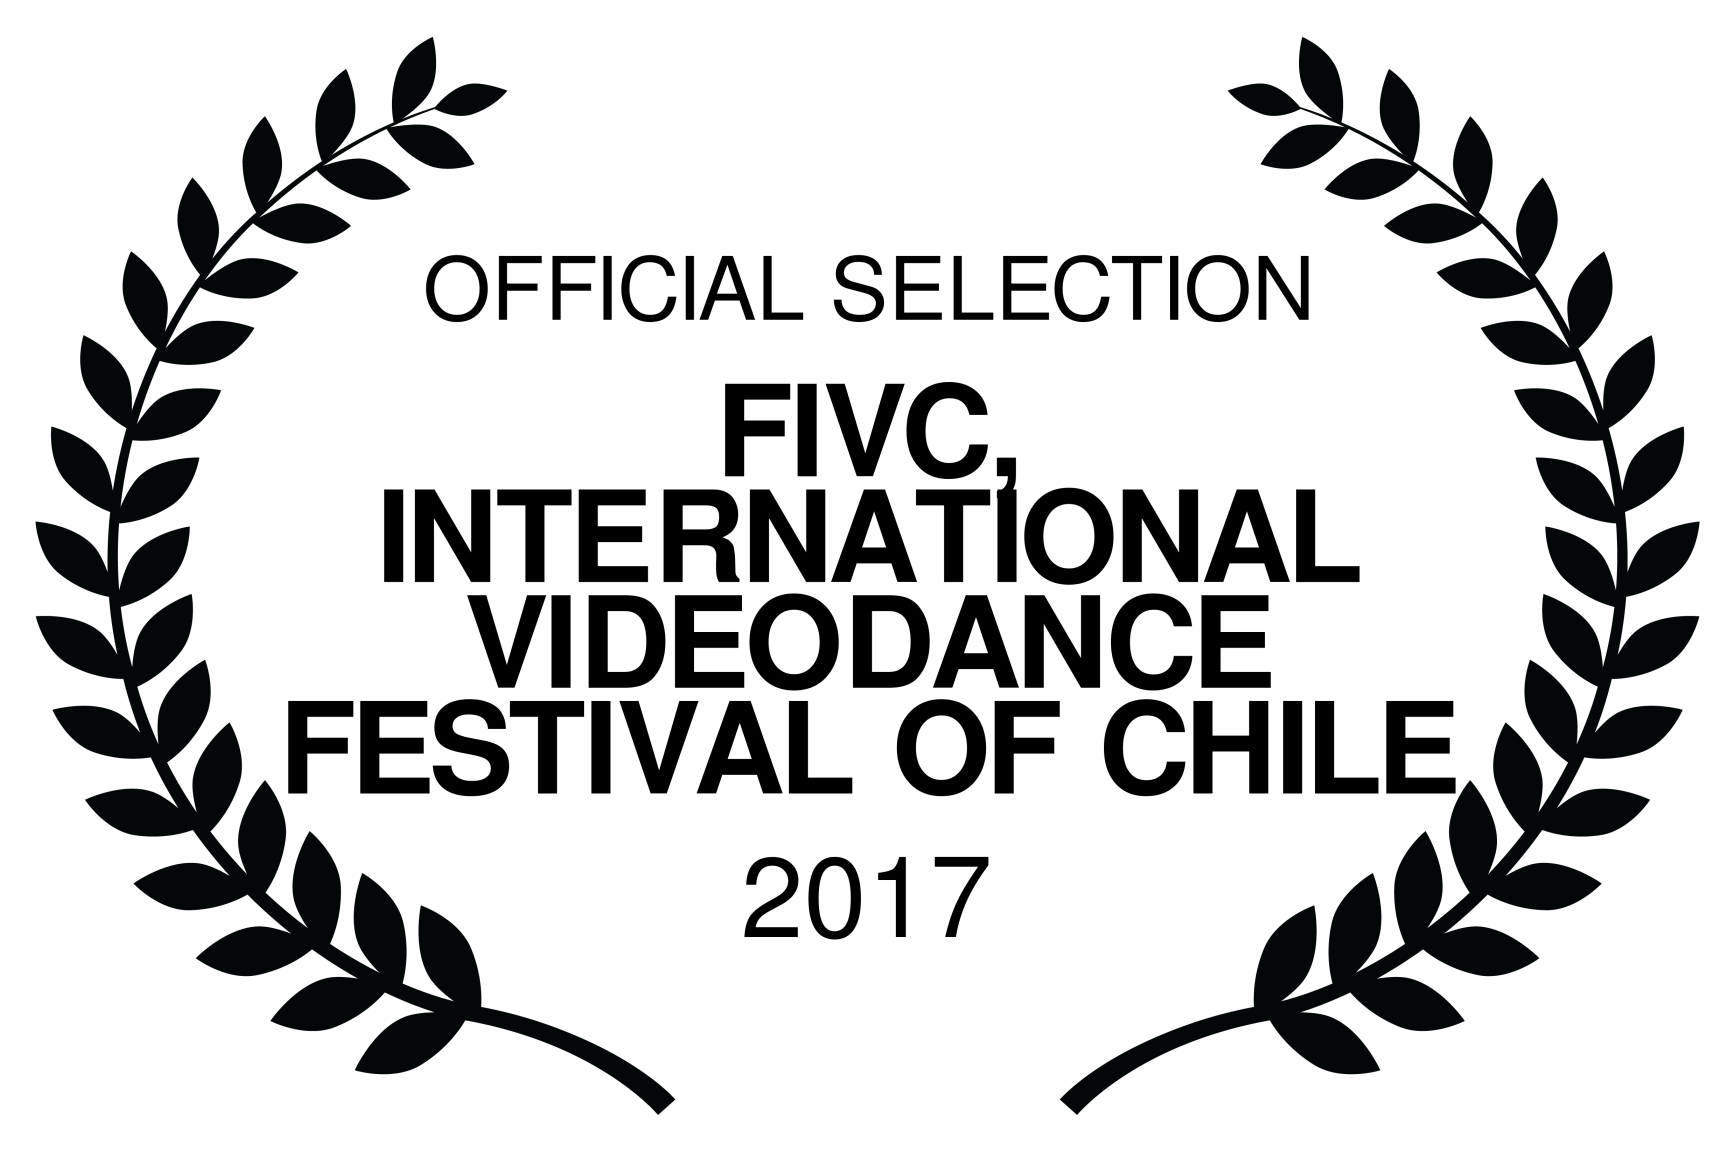 OFFICIAL SELECTION - FIVC INTERNATIONAL VIDEODANCE FESTIVAL OF CHILE - 2017 (1).png